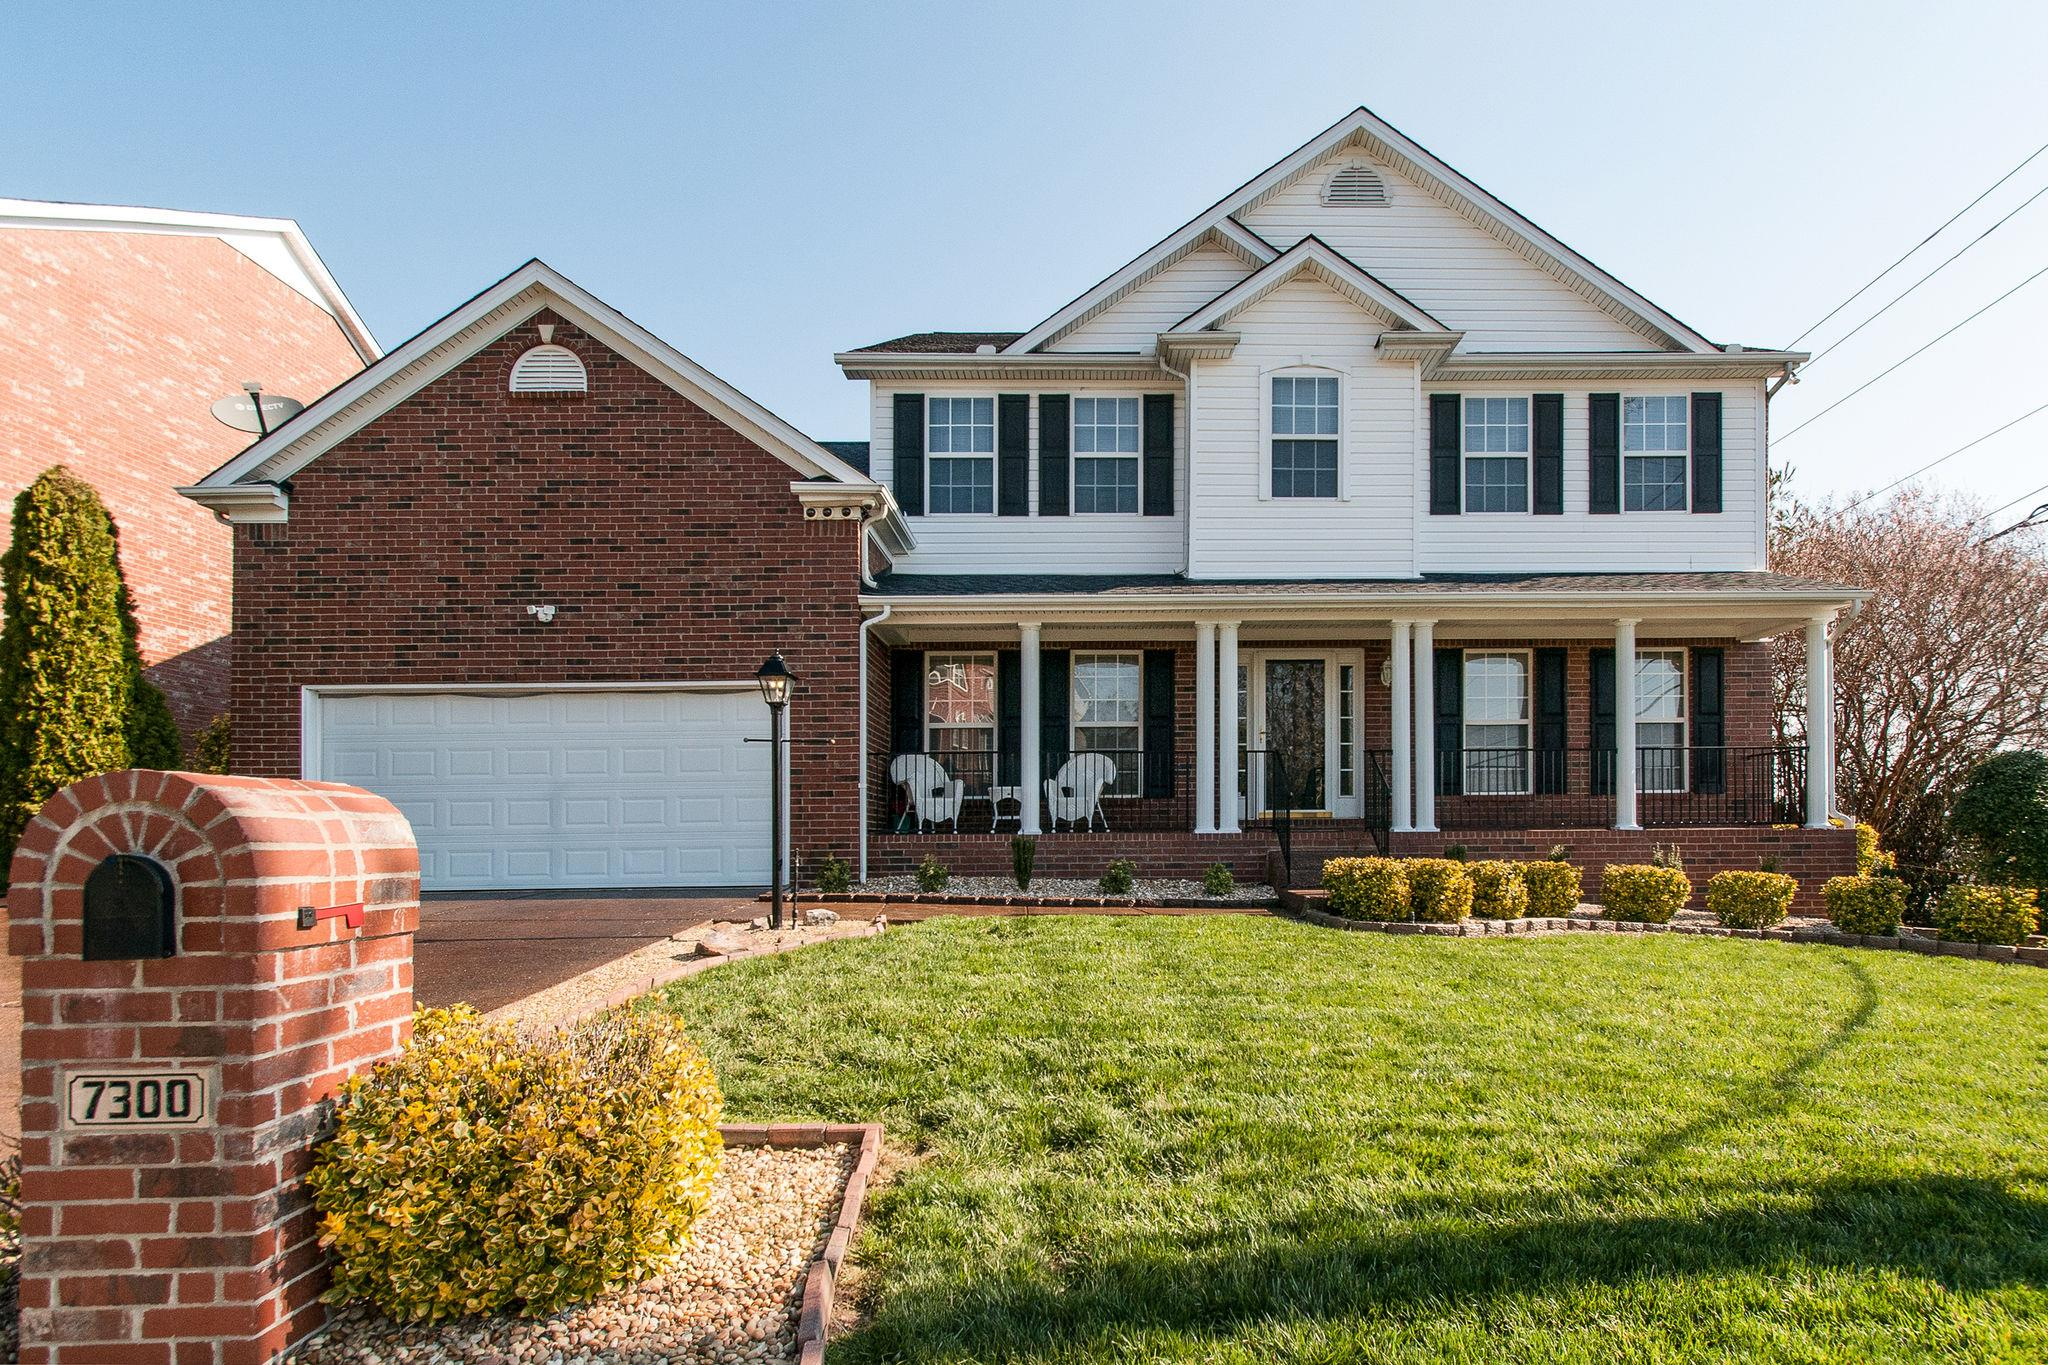 7300 OLMSTED DRIVE, Bellevue, Tennessee